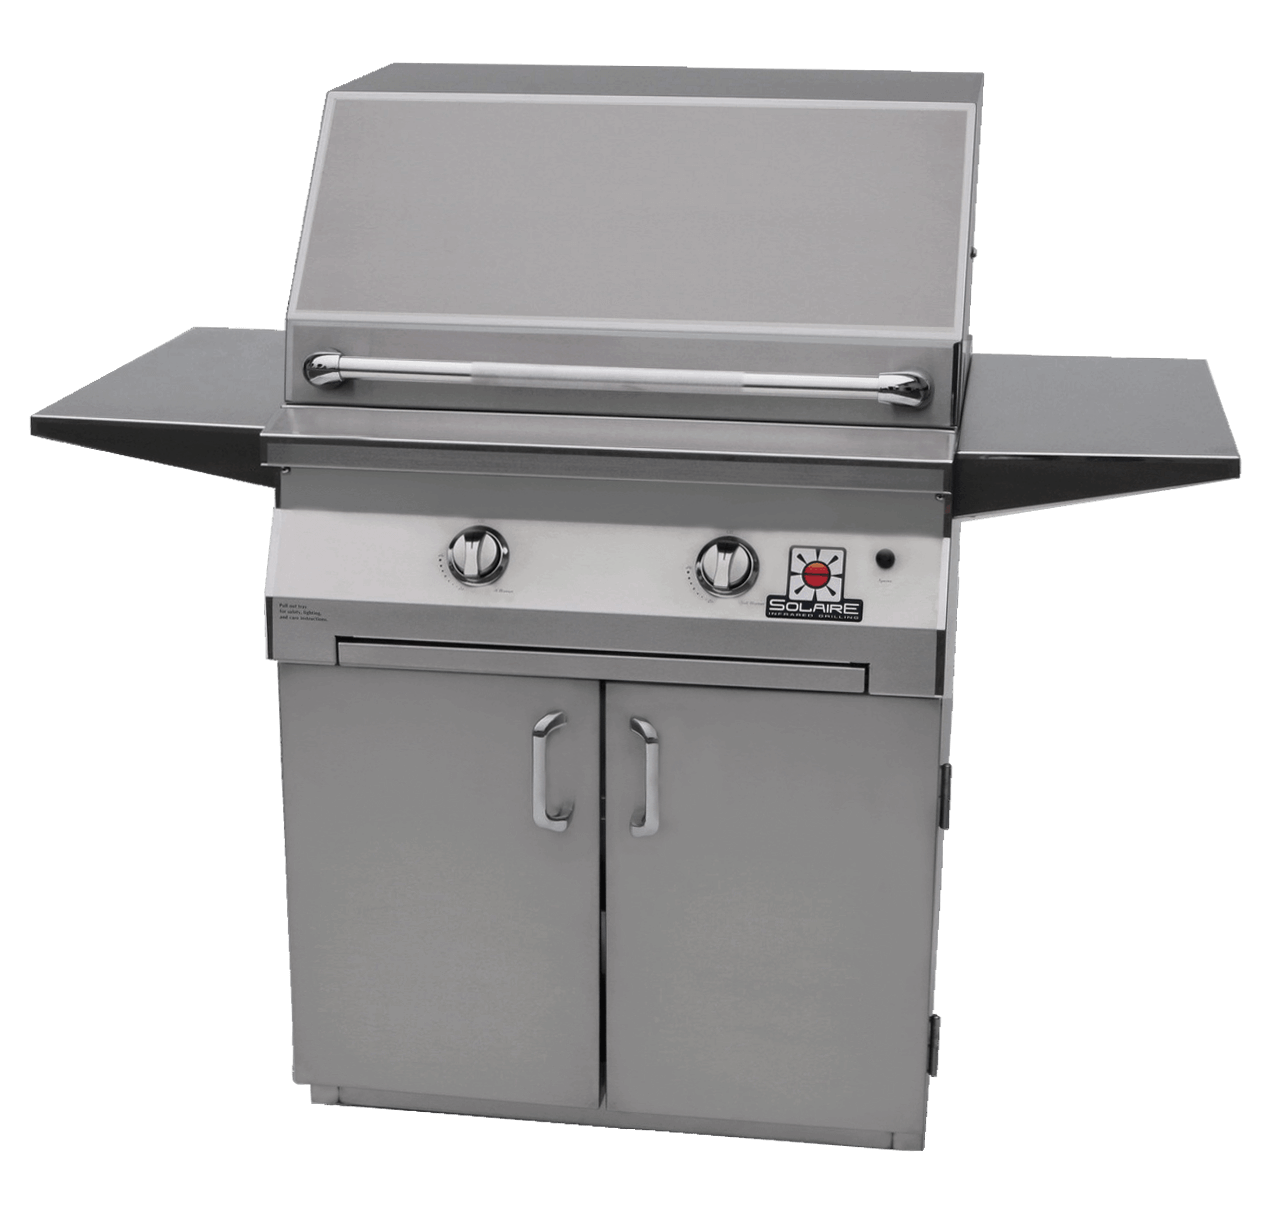 Solaire 30 Inch Grill, Standard Cart, Front View, Hood Down, Shelves Up, IRBQ